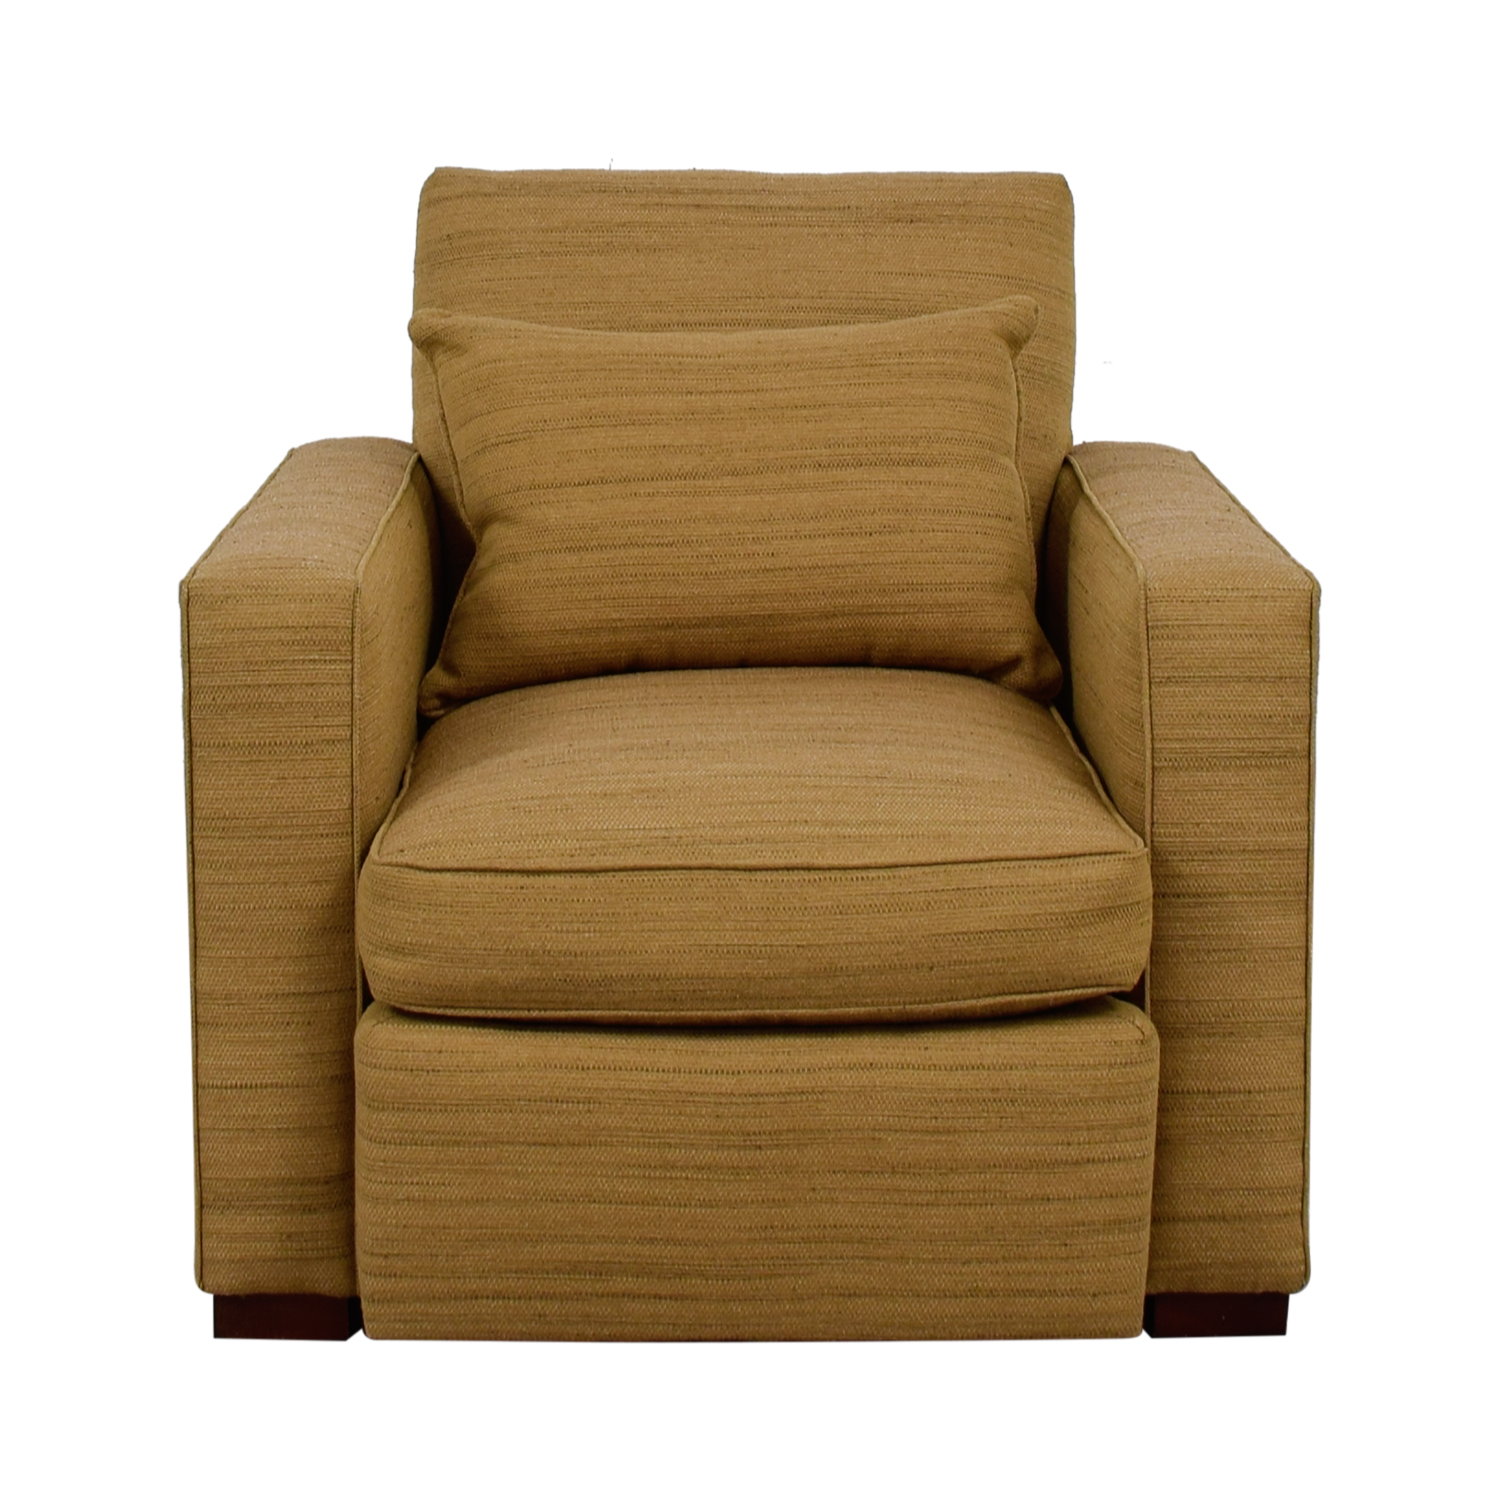 Hickory Chair Hickory Chair Classic Modern Club Chair dimensions